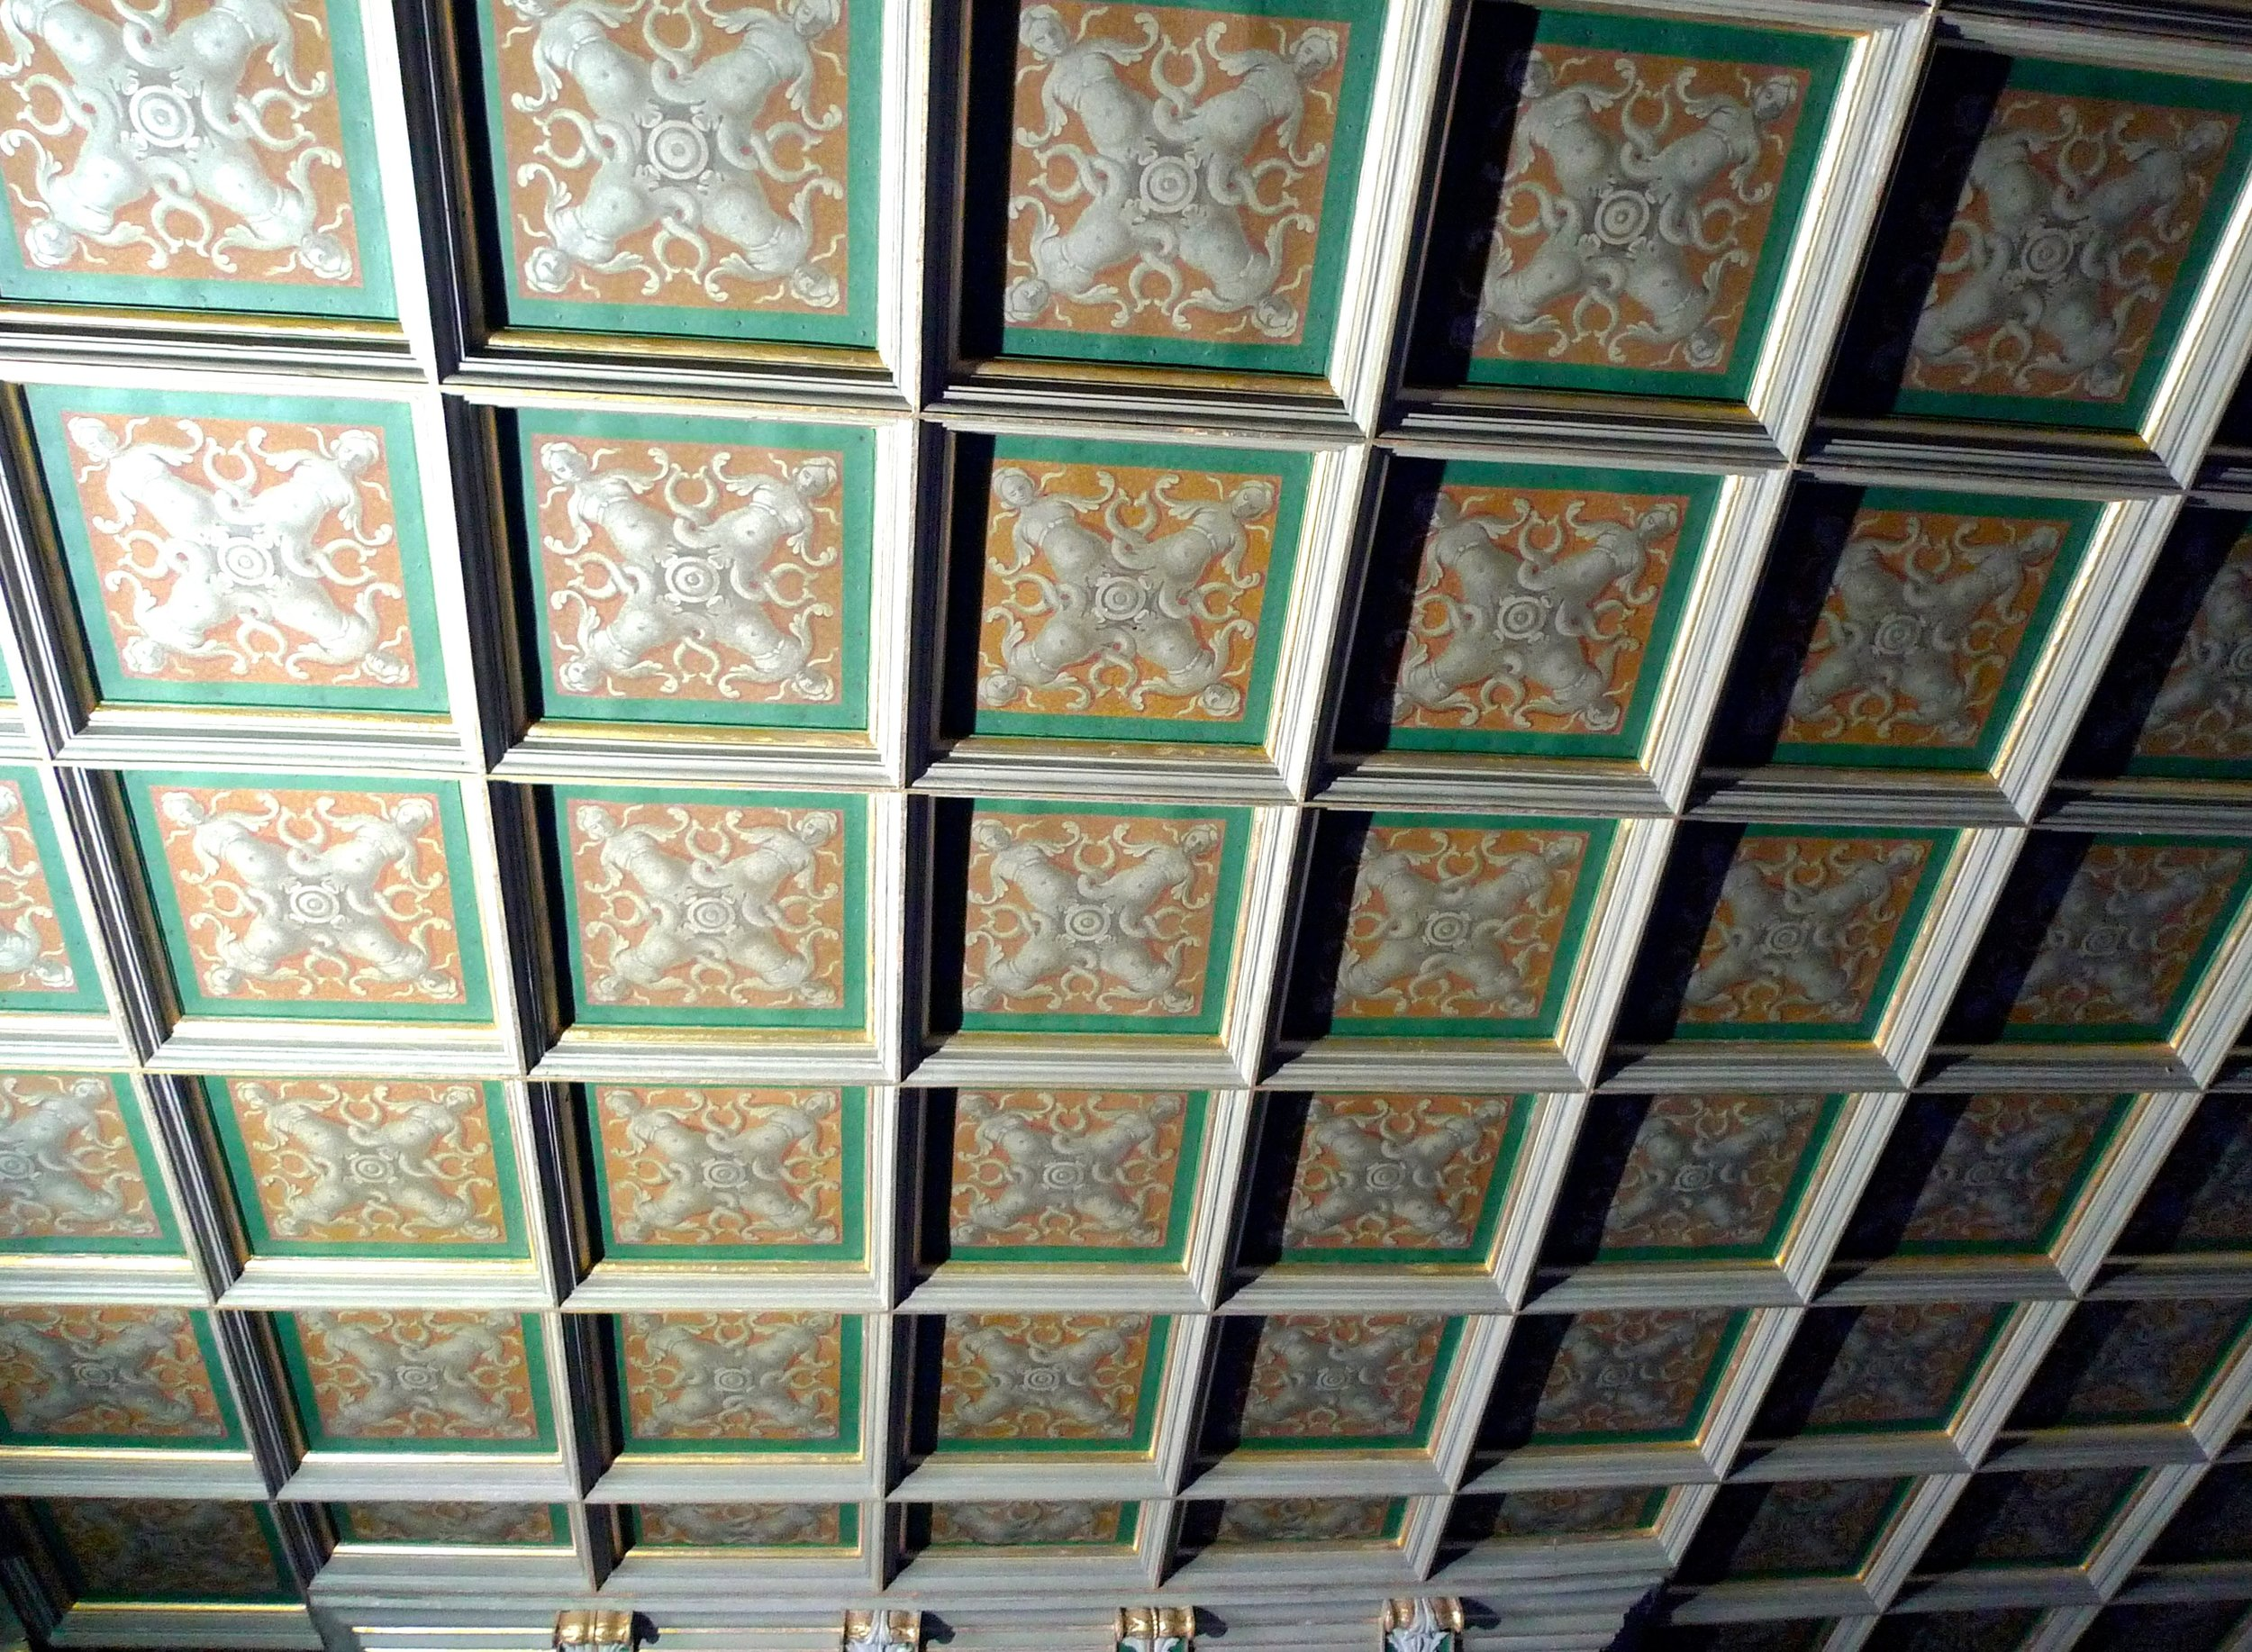 The ceiling in the Counsel room